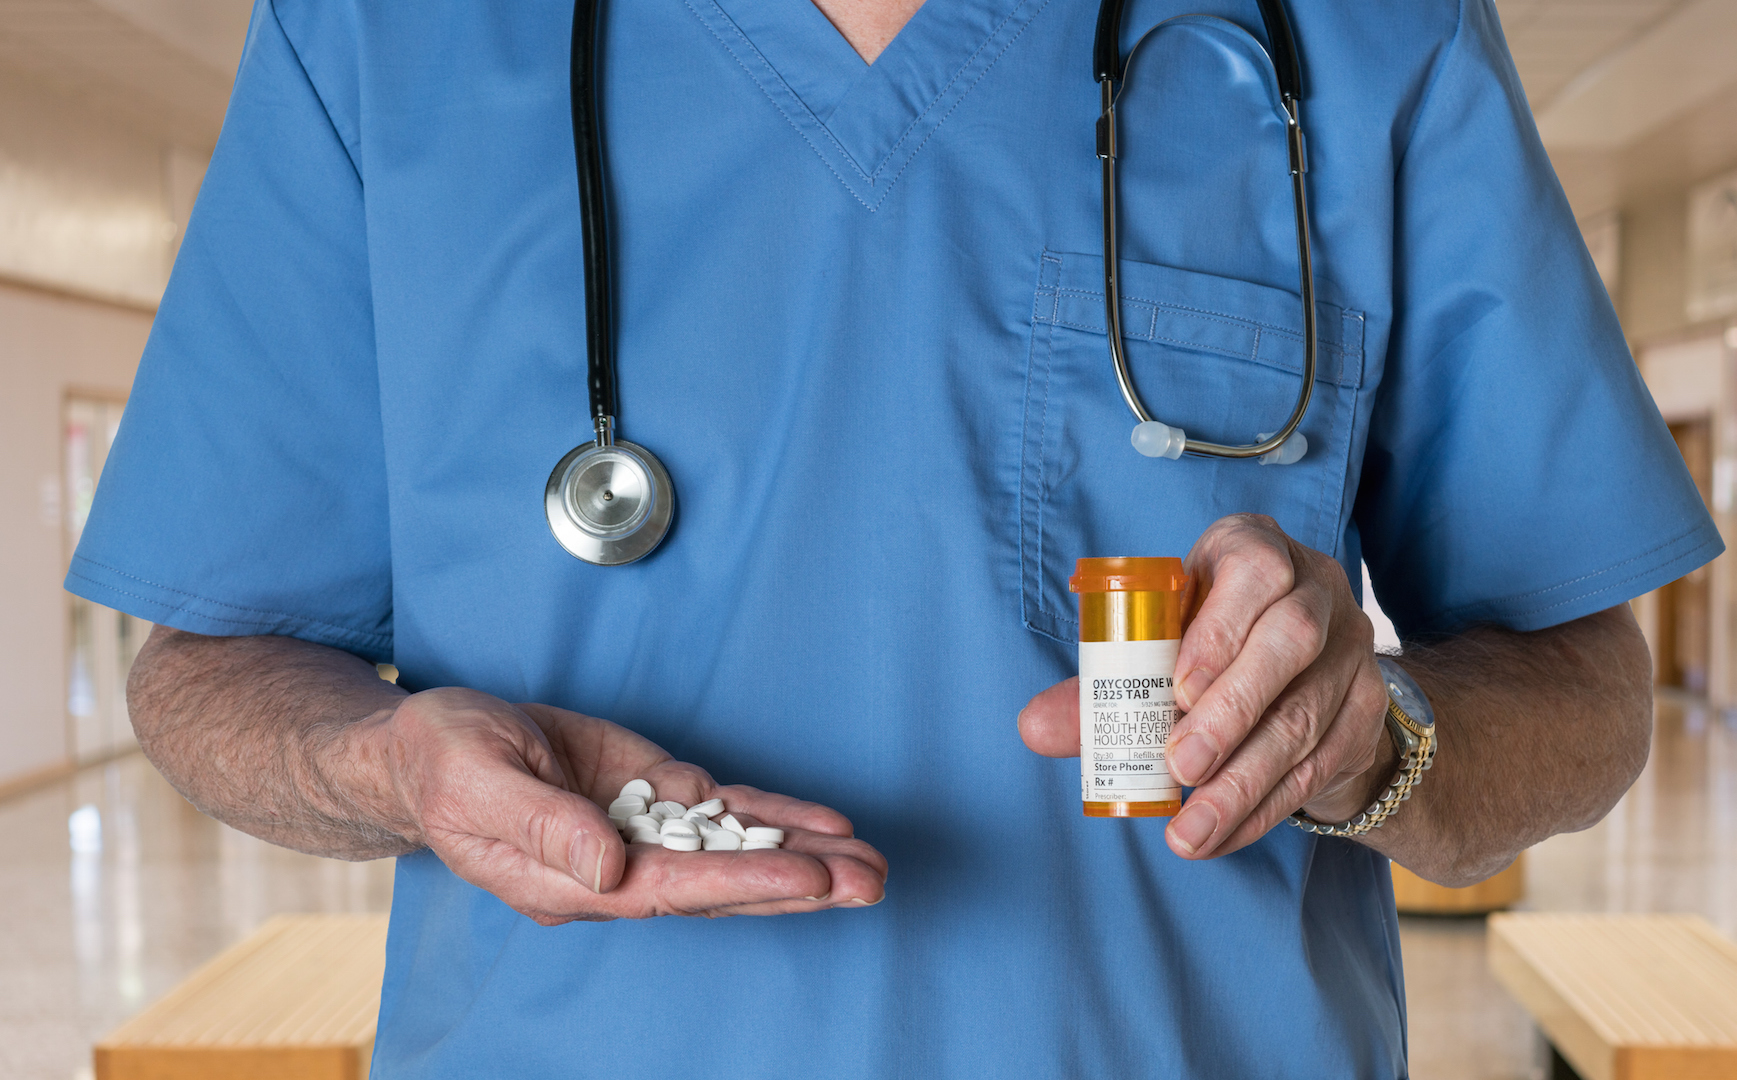 Generic oxycodone tablets in hands of doctor